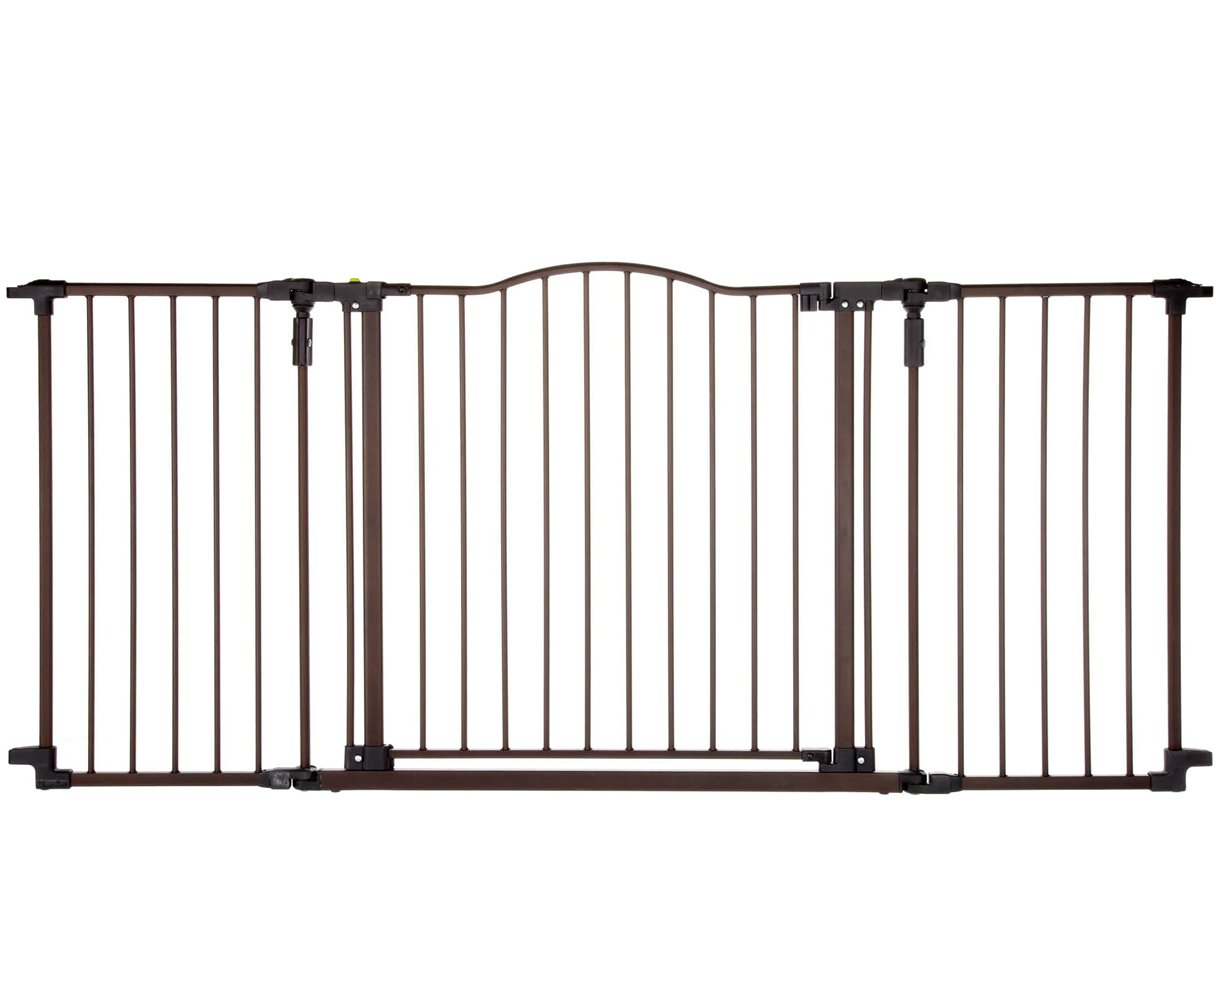 ''Deluxe Décor Gate'' by North States: Fits extra-wide openings and has matte finish on heavy-duty metal for safety and functionality. Hardware mount. Fits openings 38.3'' to 72'' wide (30'' tall, Bronze)